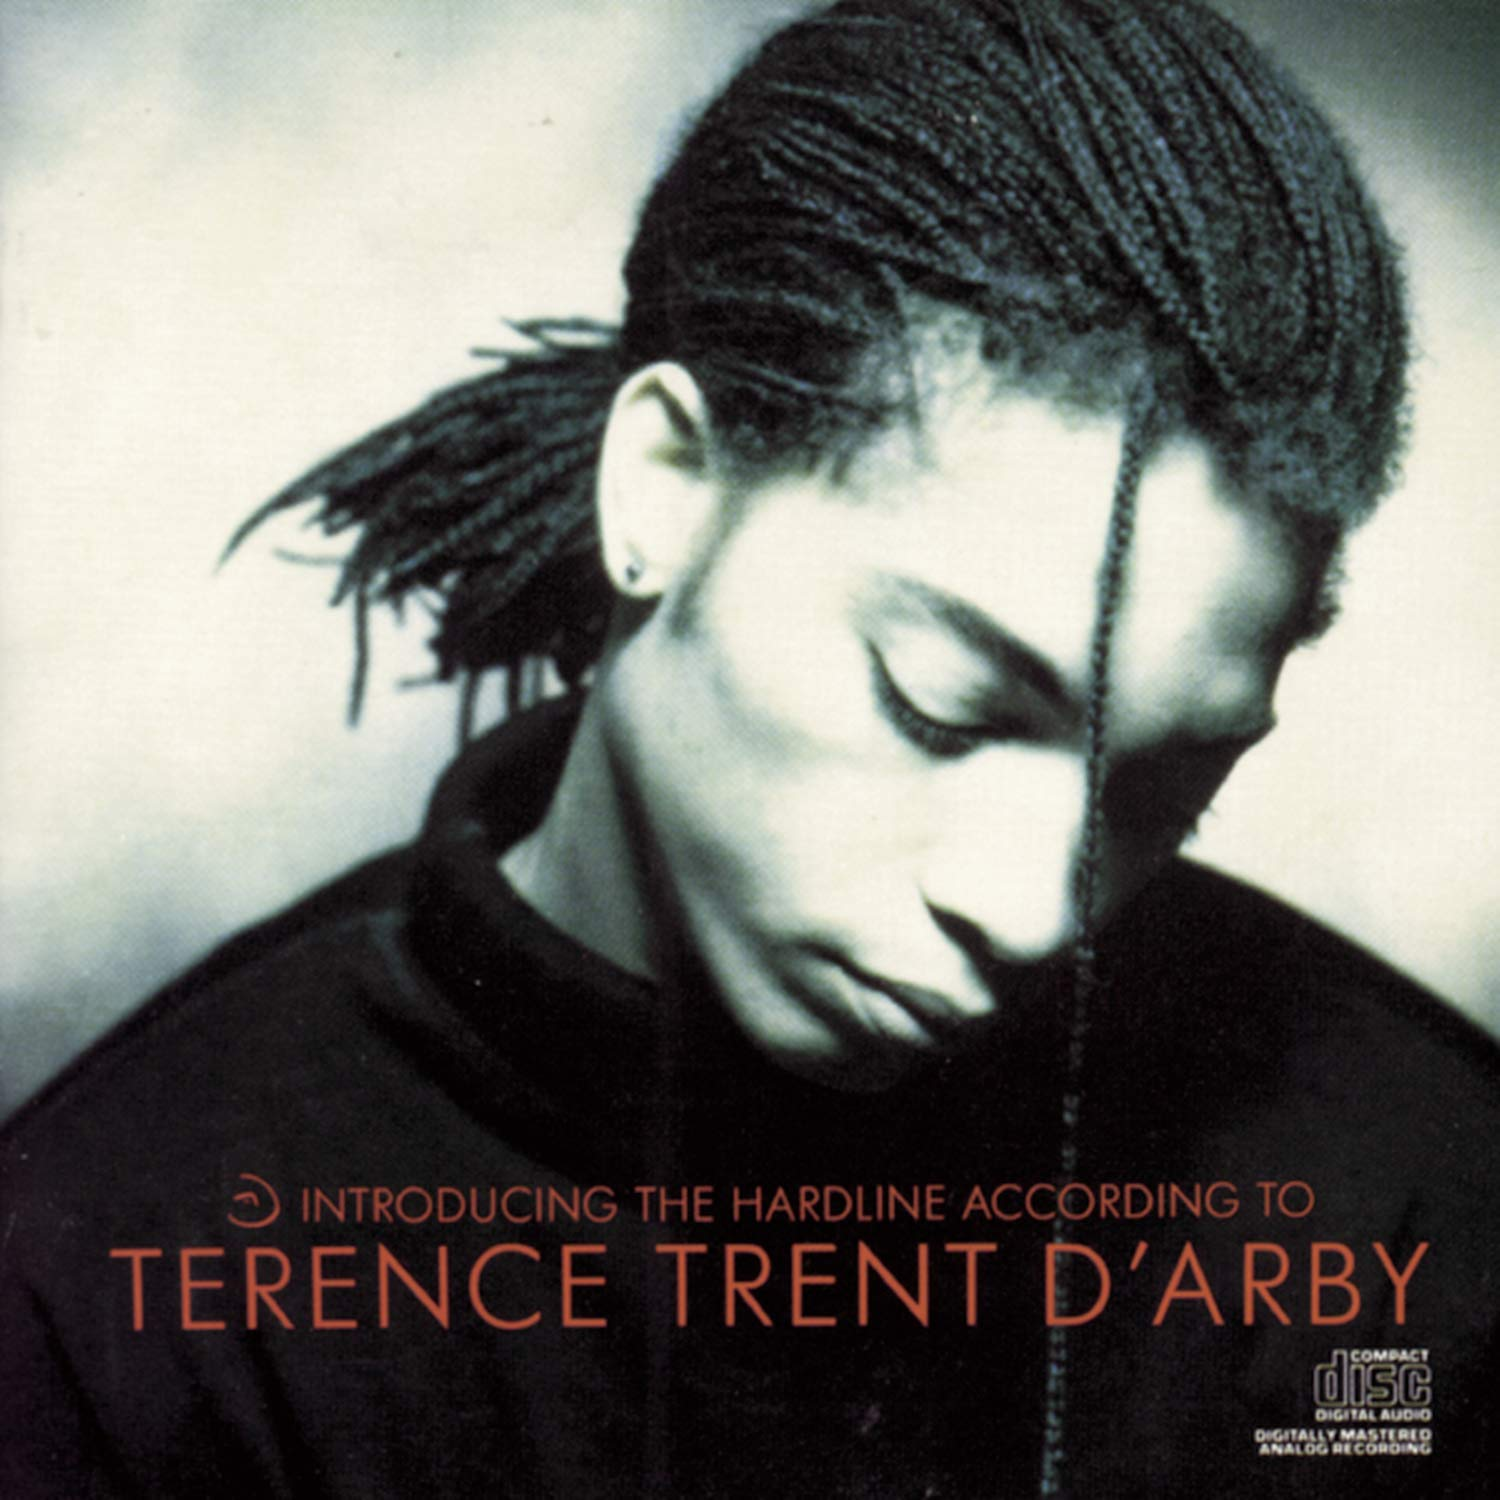 Terence Trent D Arby Introducing The Hardline According To Terence Trent D Arby Music